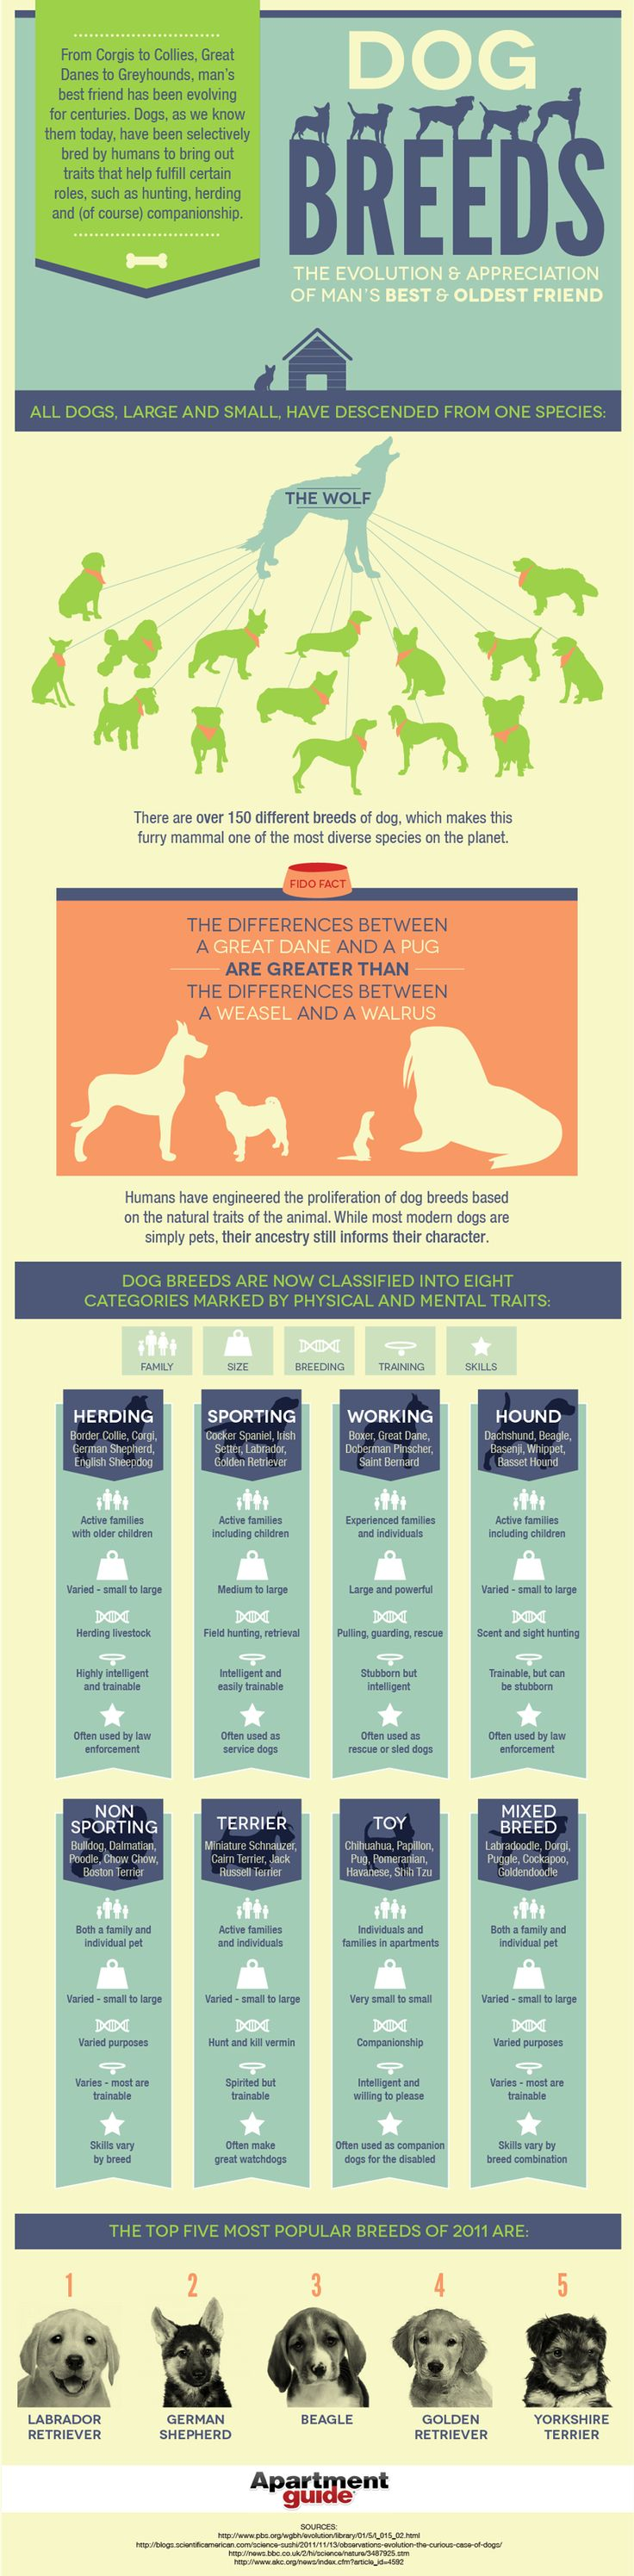 Did You Know There Are More Than 150 Different Breeds Of Dogs? Use Our Guide